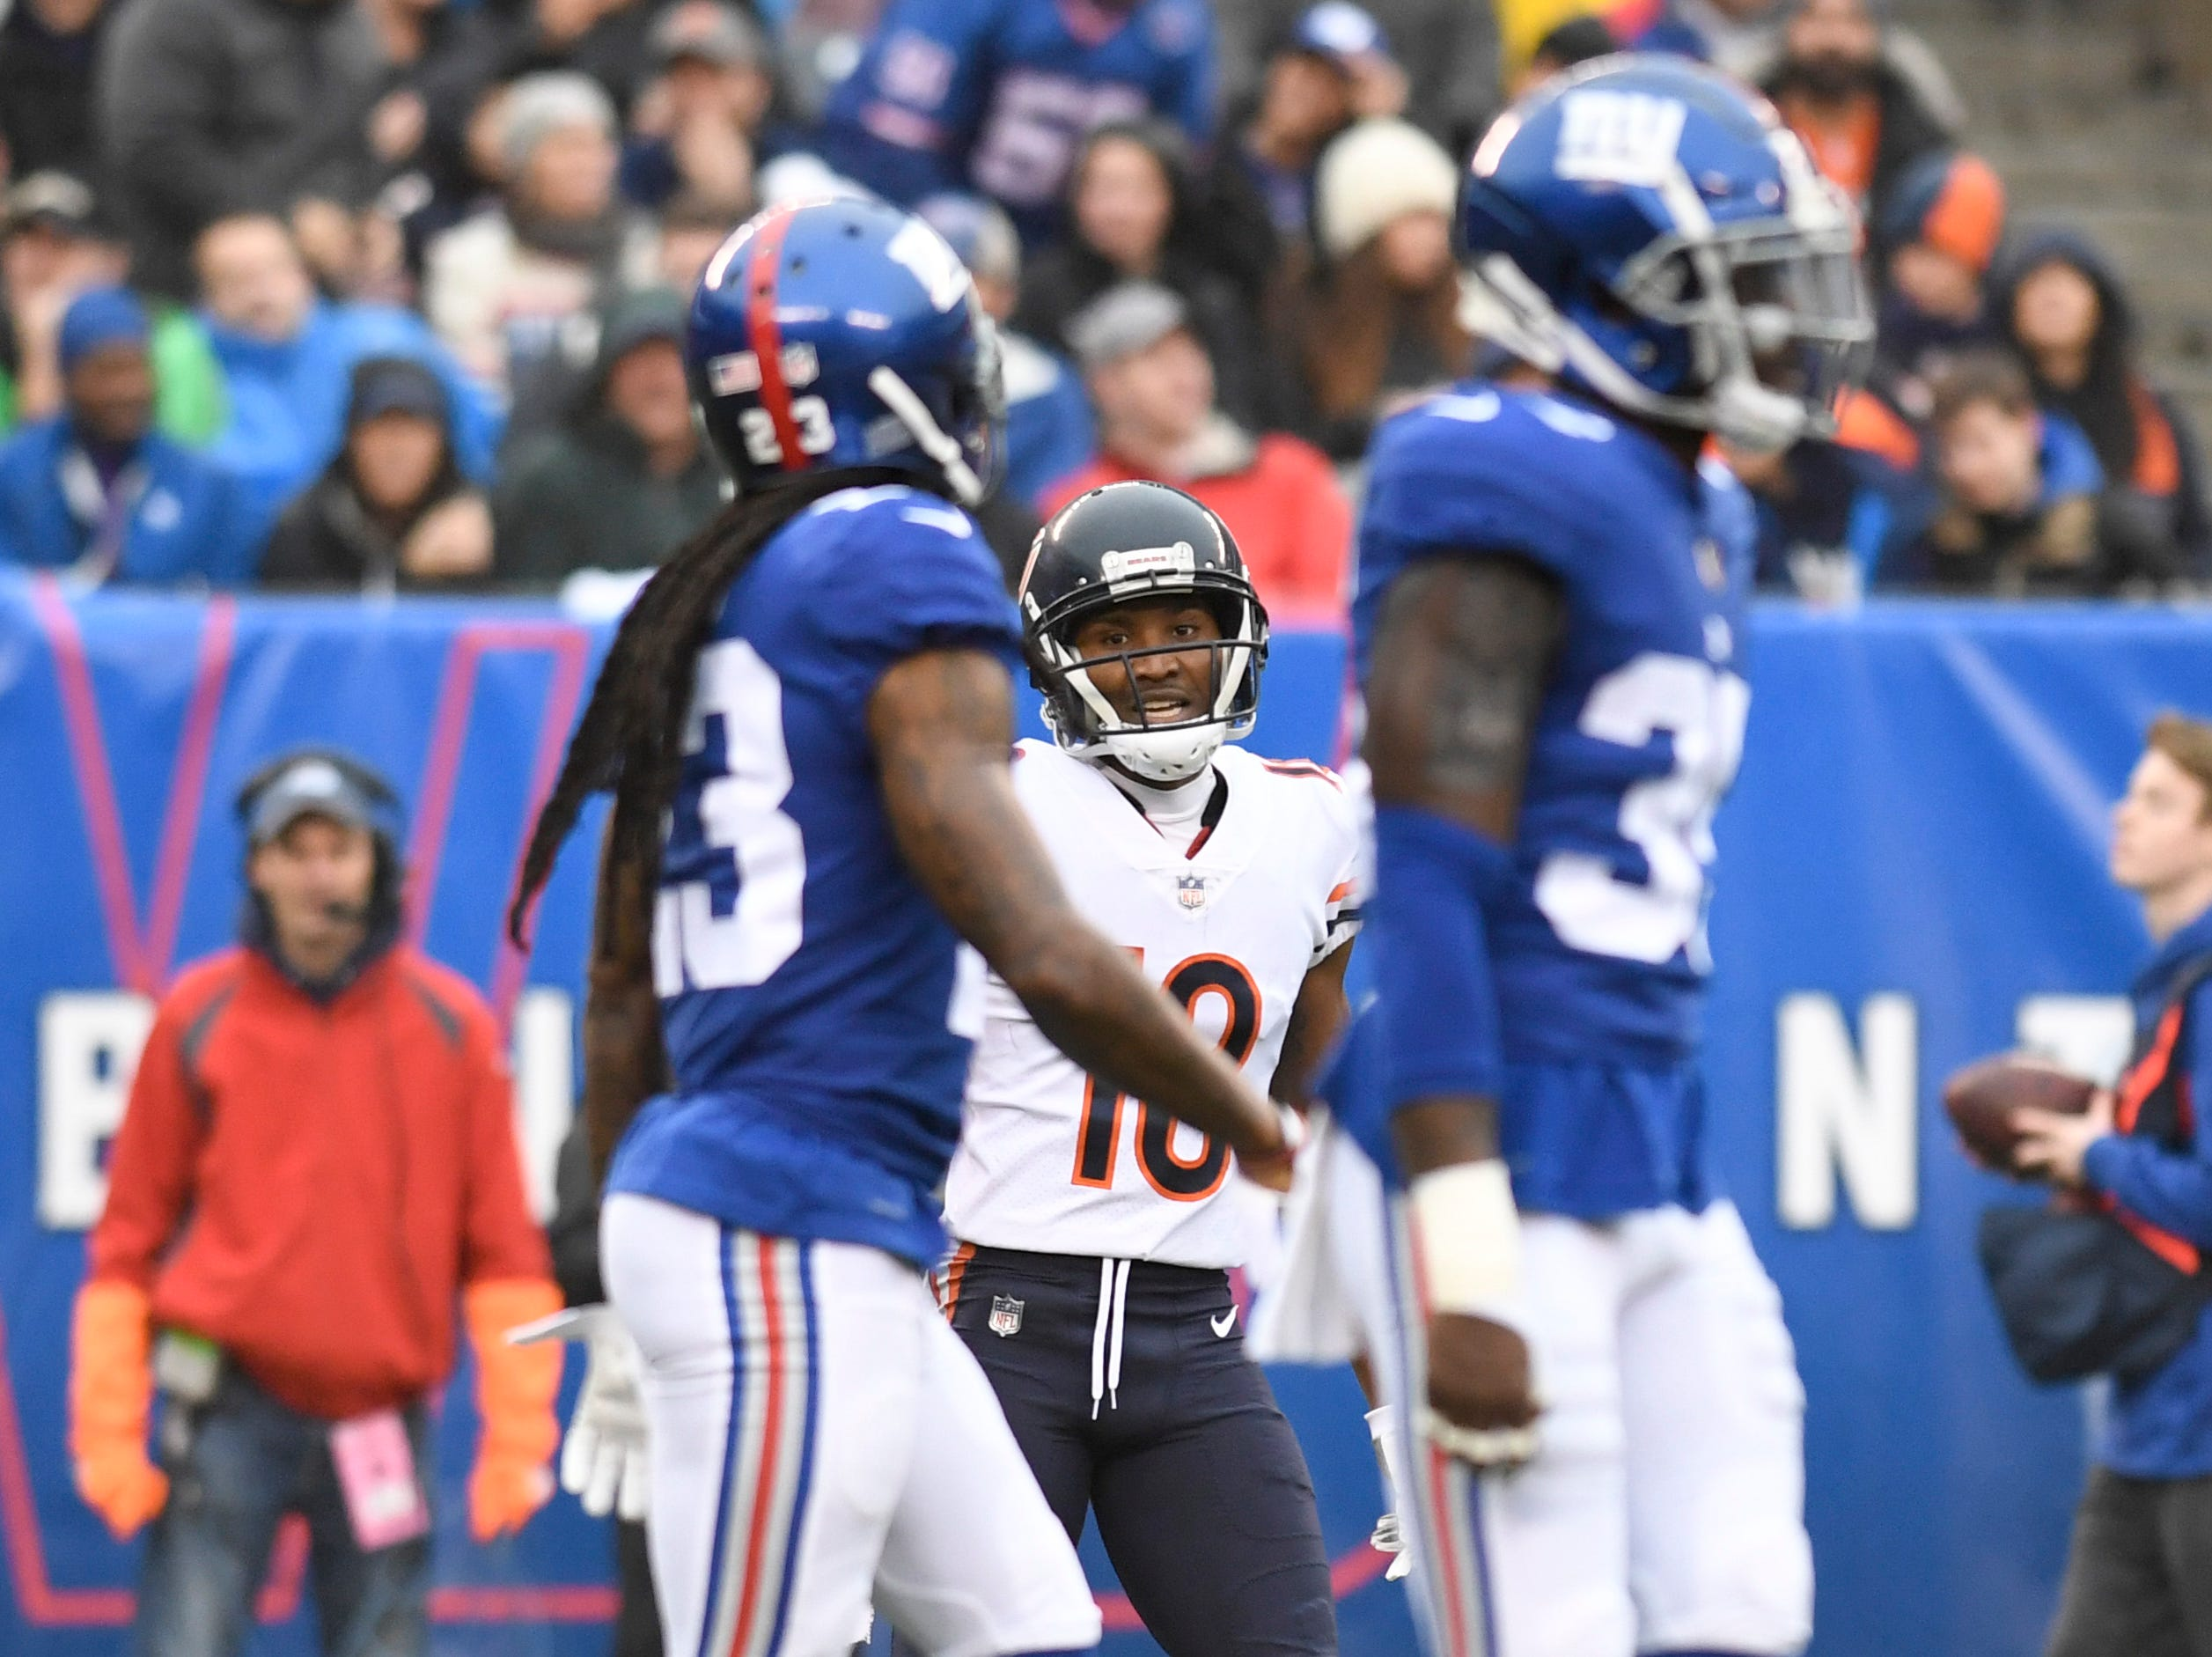 Chicago Bears wide receiver Taylor Gabriel (18) has words with New York Giants cornerbacks B.W. Webb, left, and Curtis Riley, right, after Riley nearly intercepts a pass intended for Gabriel in the first half. The New York Giants face the Chicago Bears on Sunday, Dec. 2, 2018, in East Rutherford.